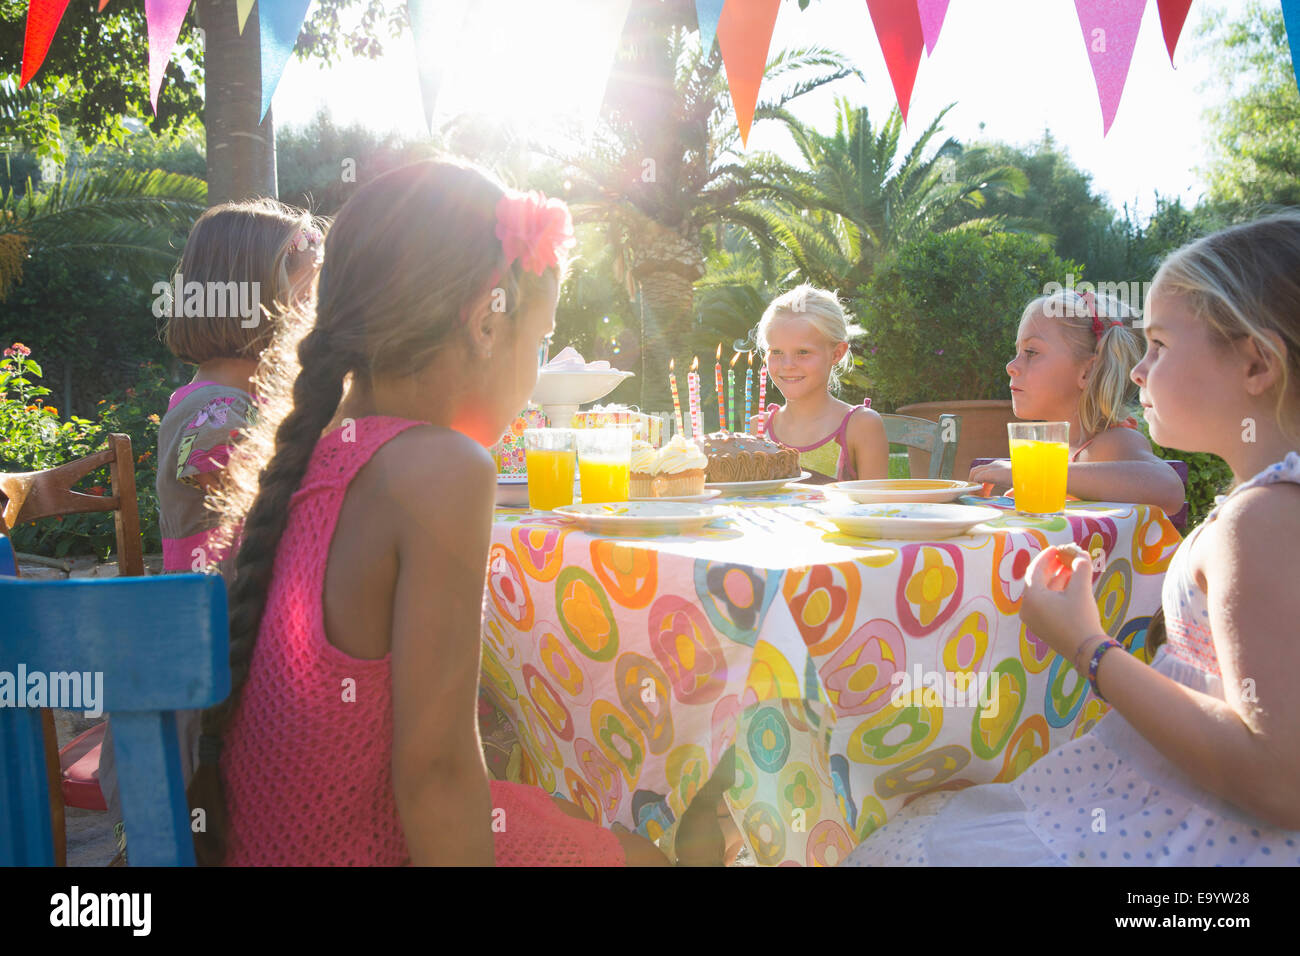 Girls sitting at table with birthday party food - Stock Image